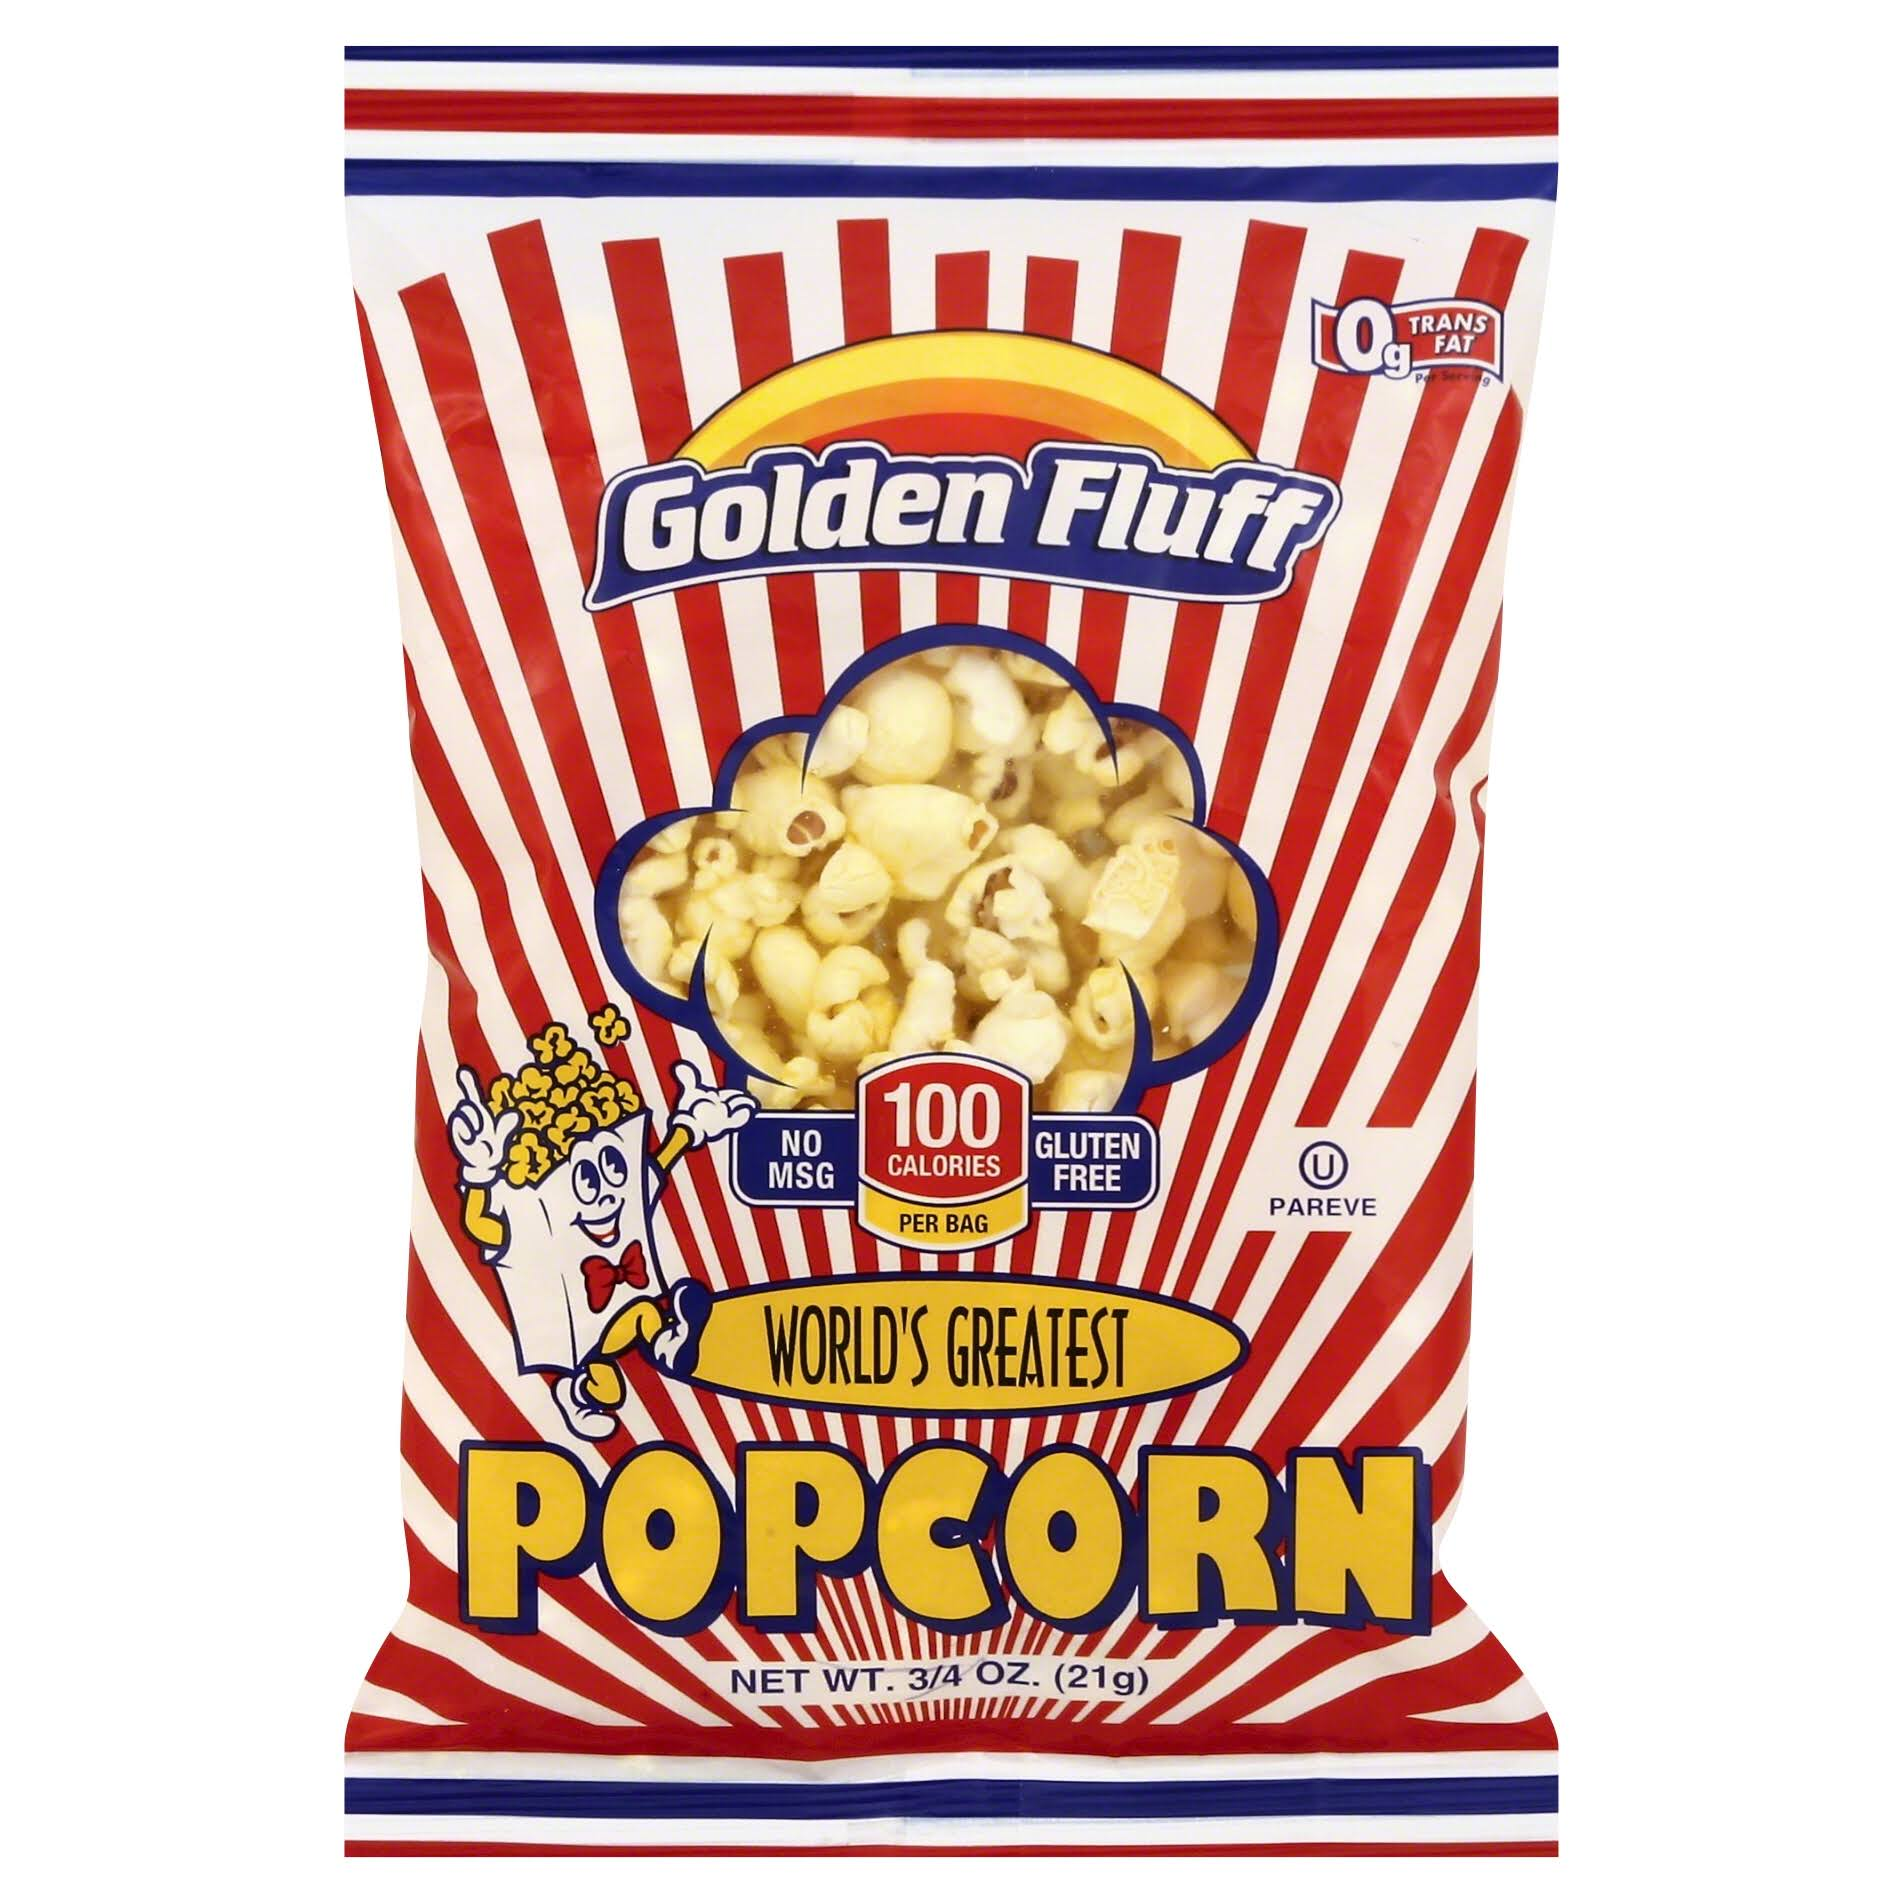 Golden Fluff Pop Corn - Small, 21g